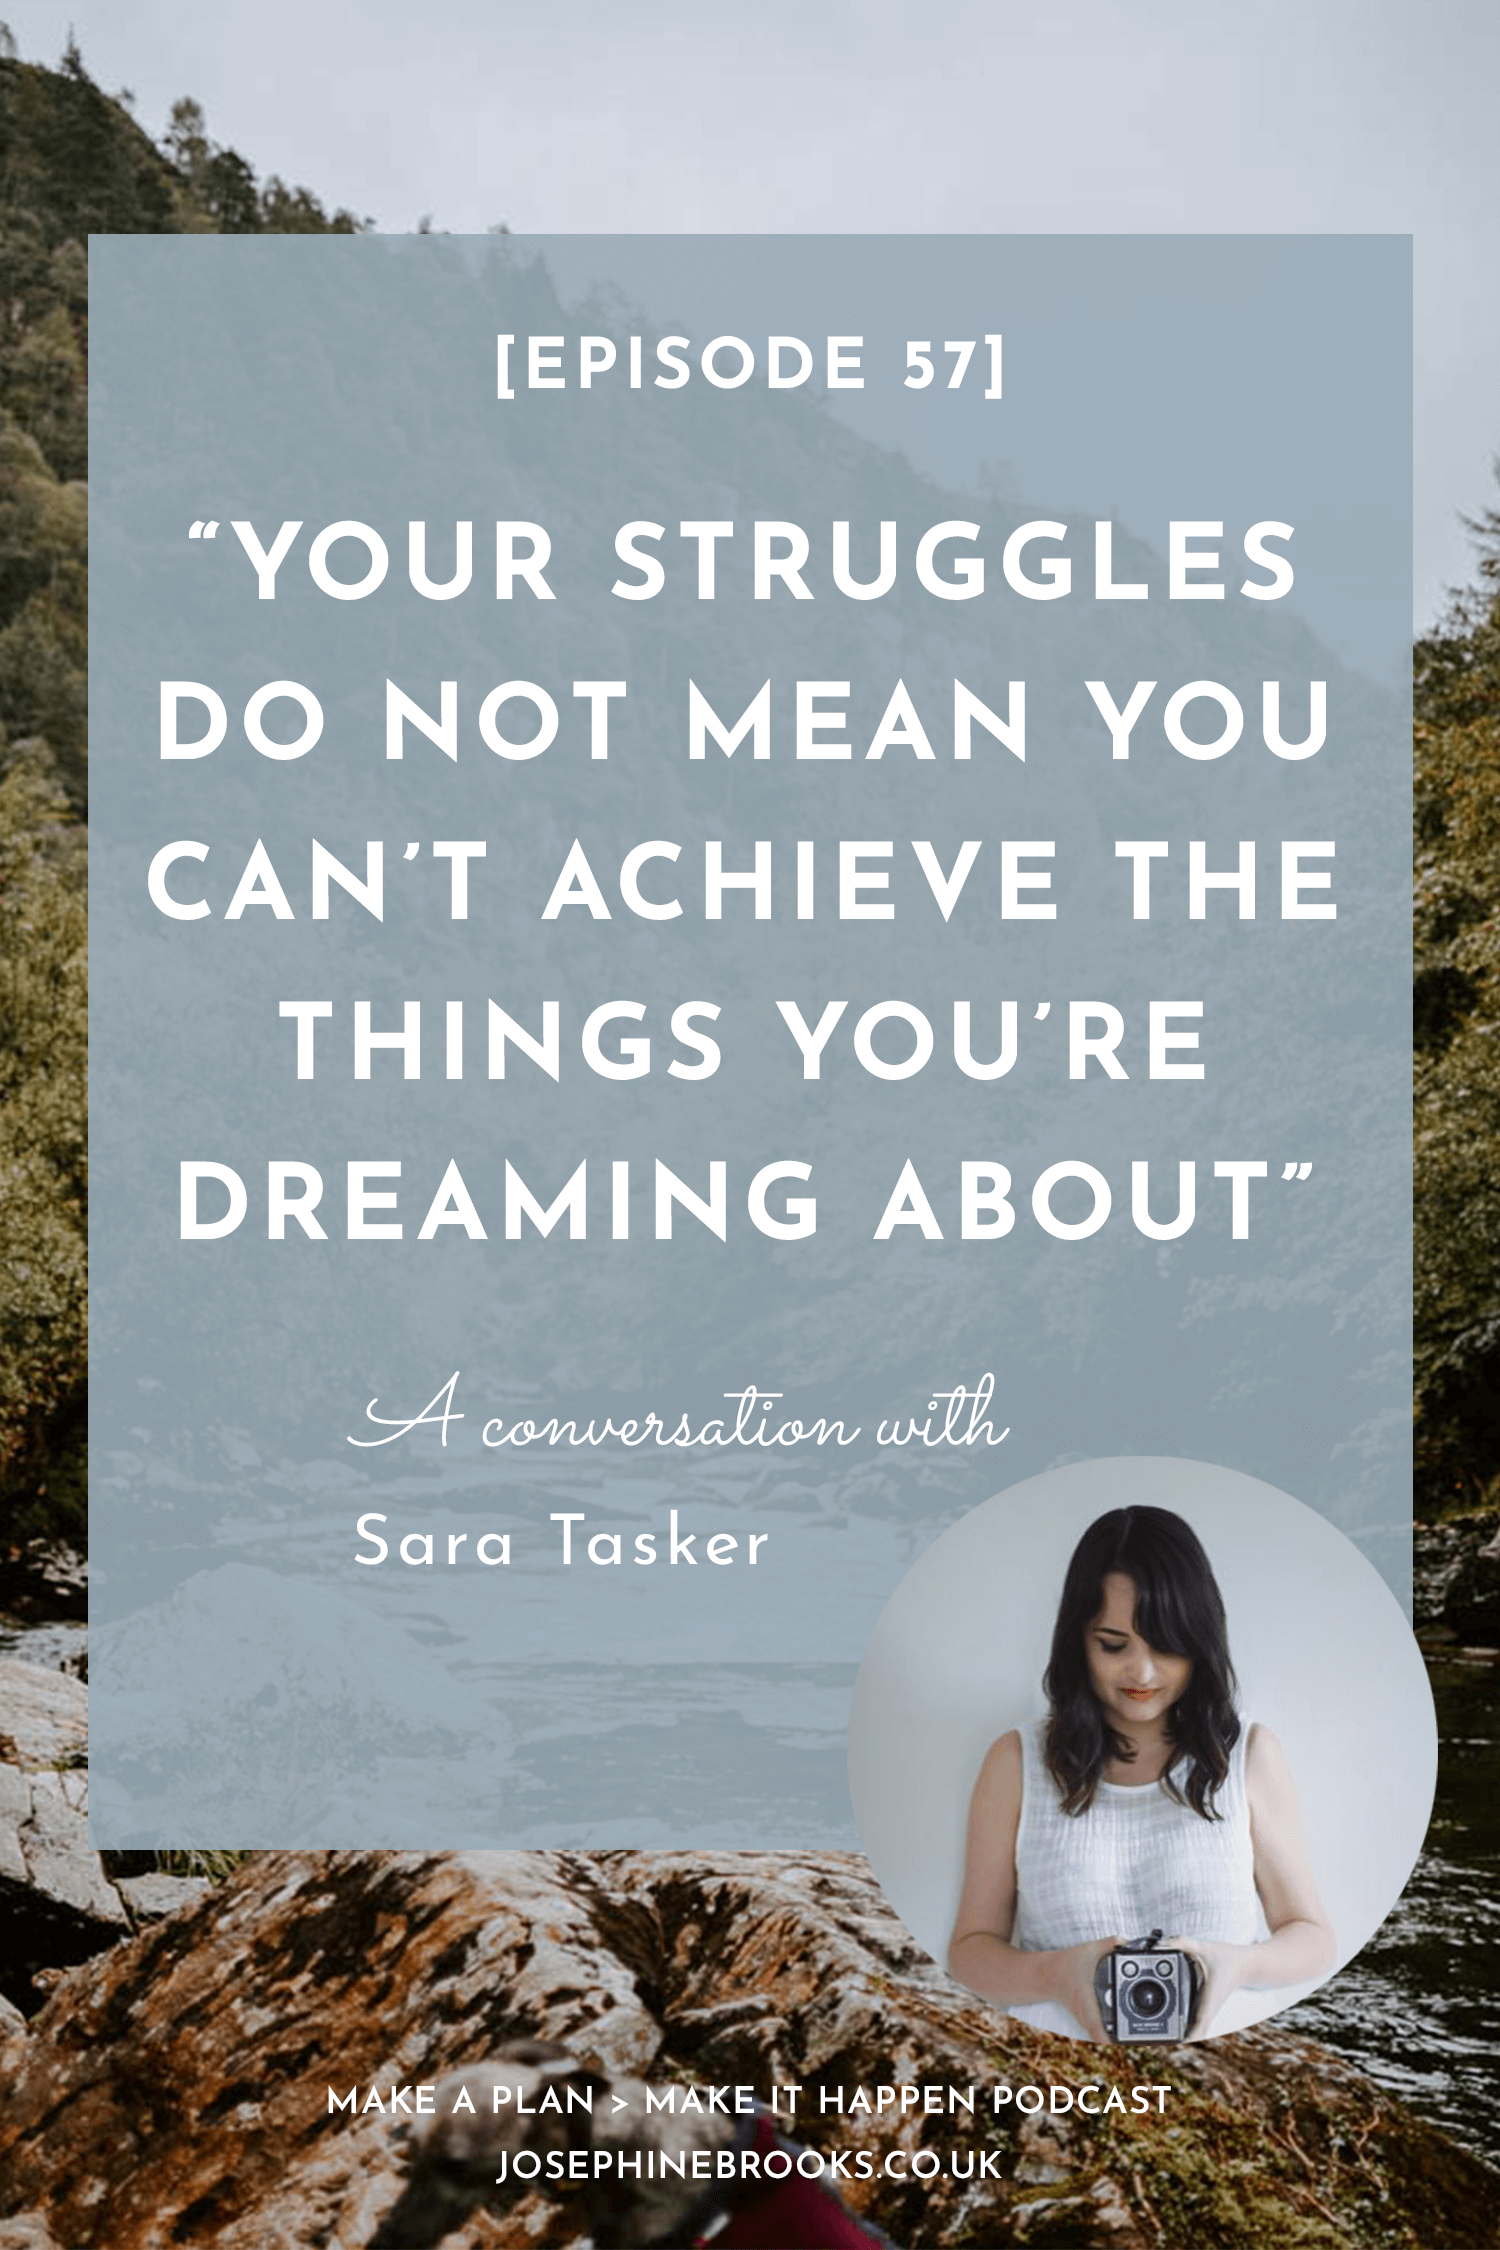 Sara Tasker Quote - on struggles with building a business. Episode 57 of Make a Plan, Make it Happen podcast hosted by Josephine Brooks